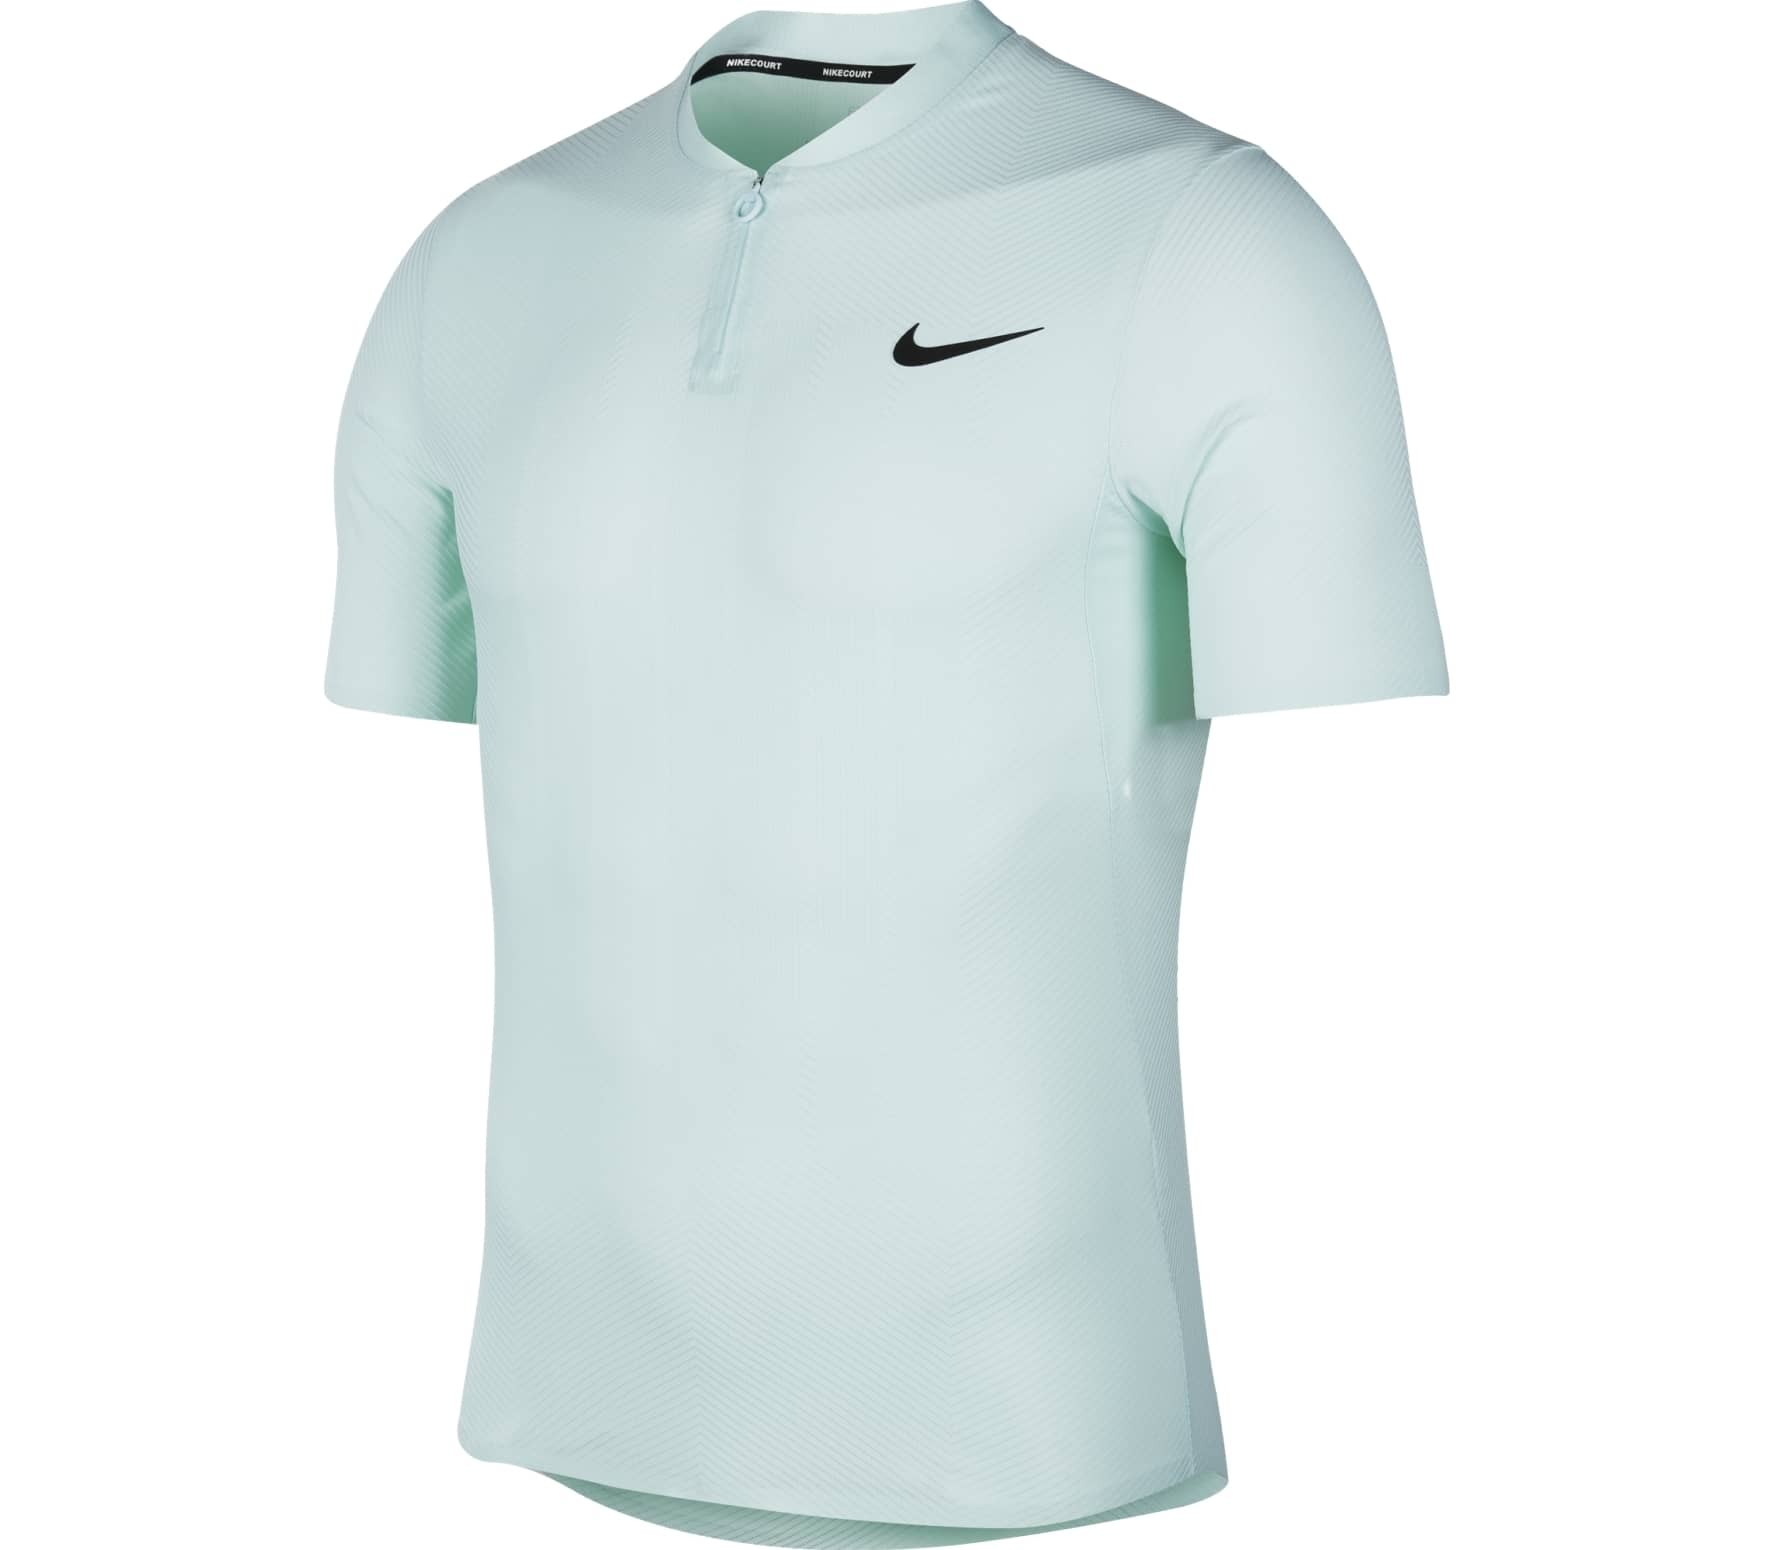 Nike - Court Zonal Cooling Advantage Hommes Tennis Polo (bleu)